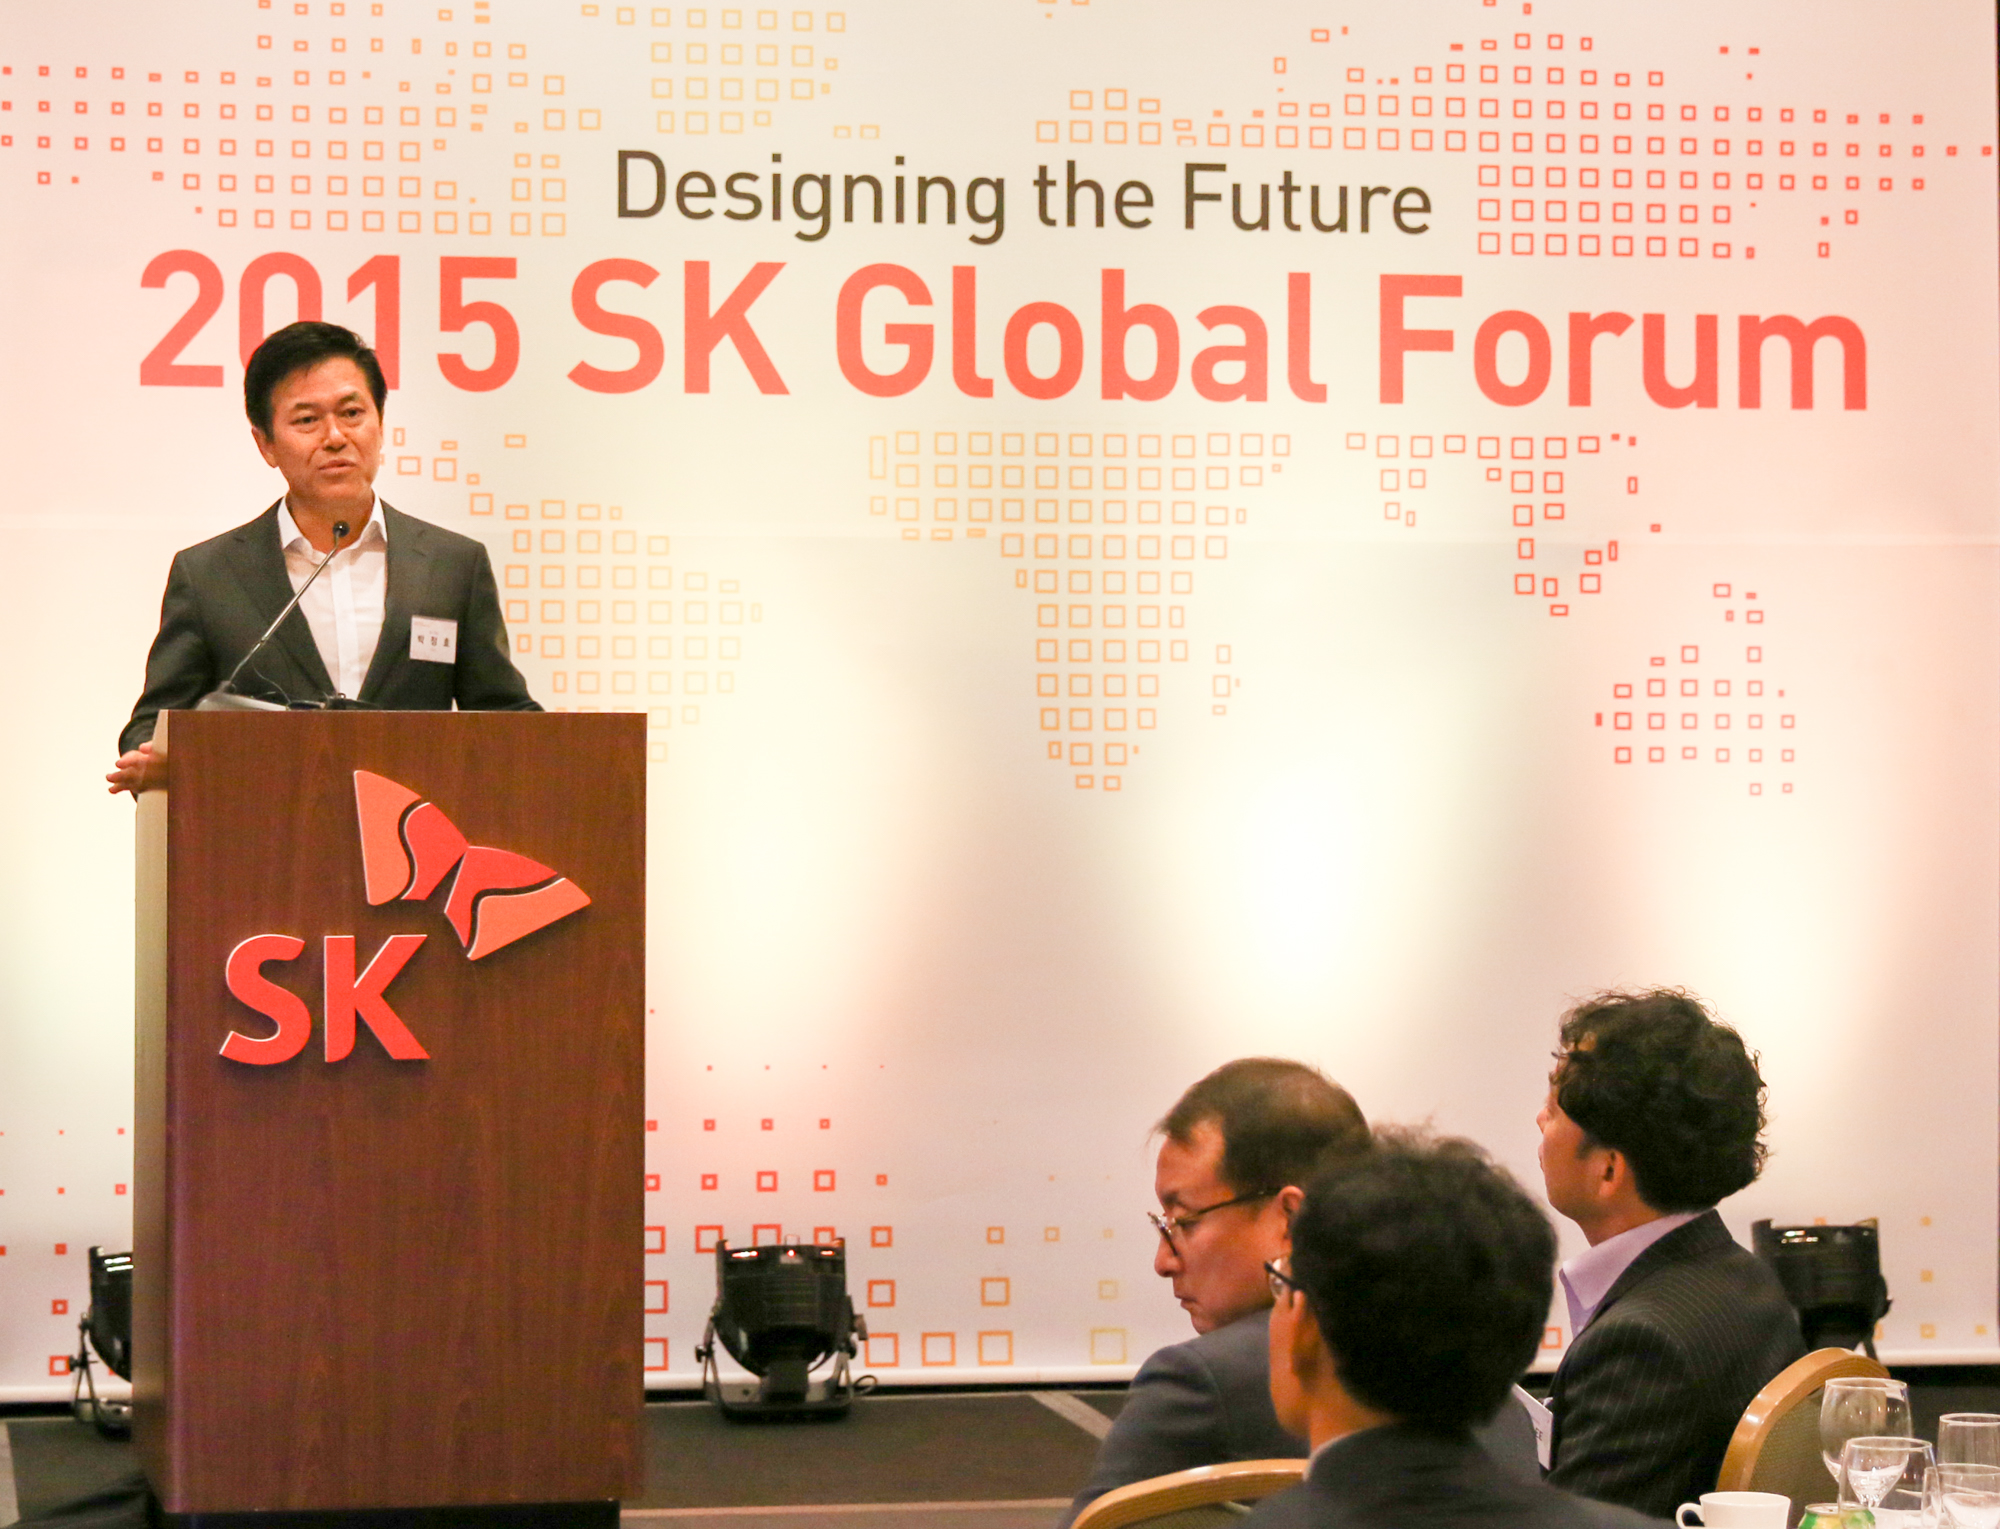 Park Jung-ho, CEO of SK C&C, delivers his keynote address at the 2015 SK Global Forum on June 5 in Silicon Valley.